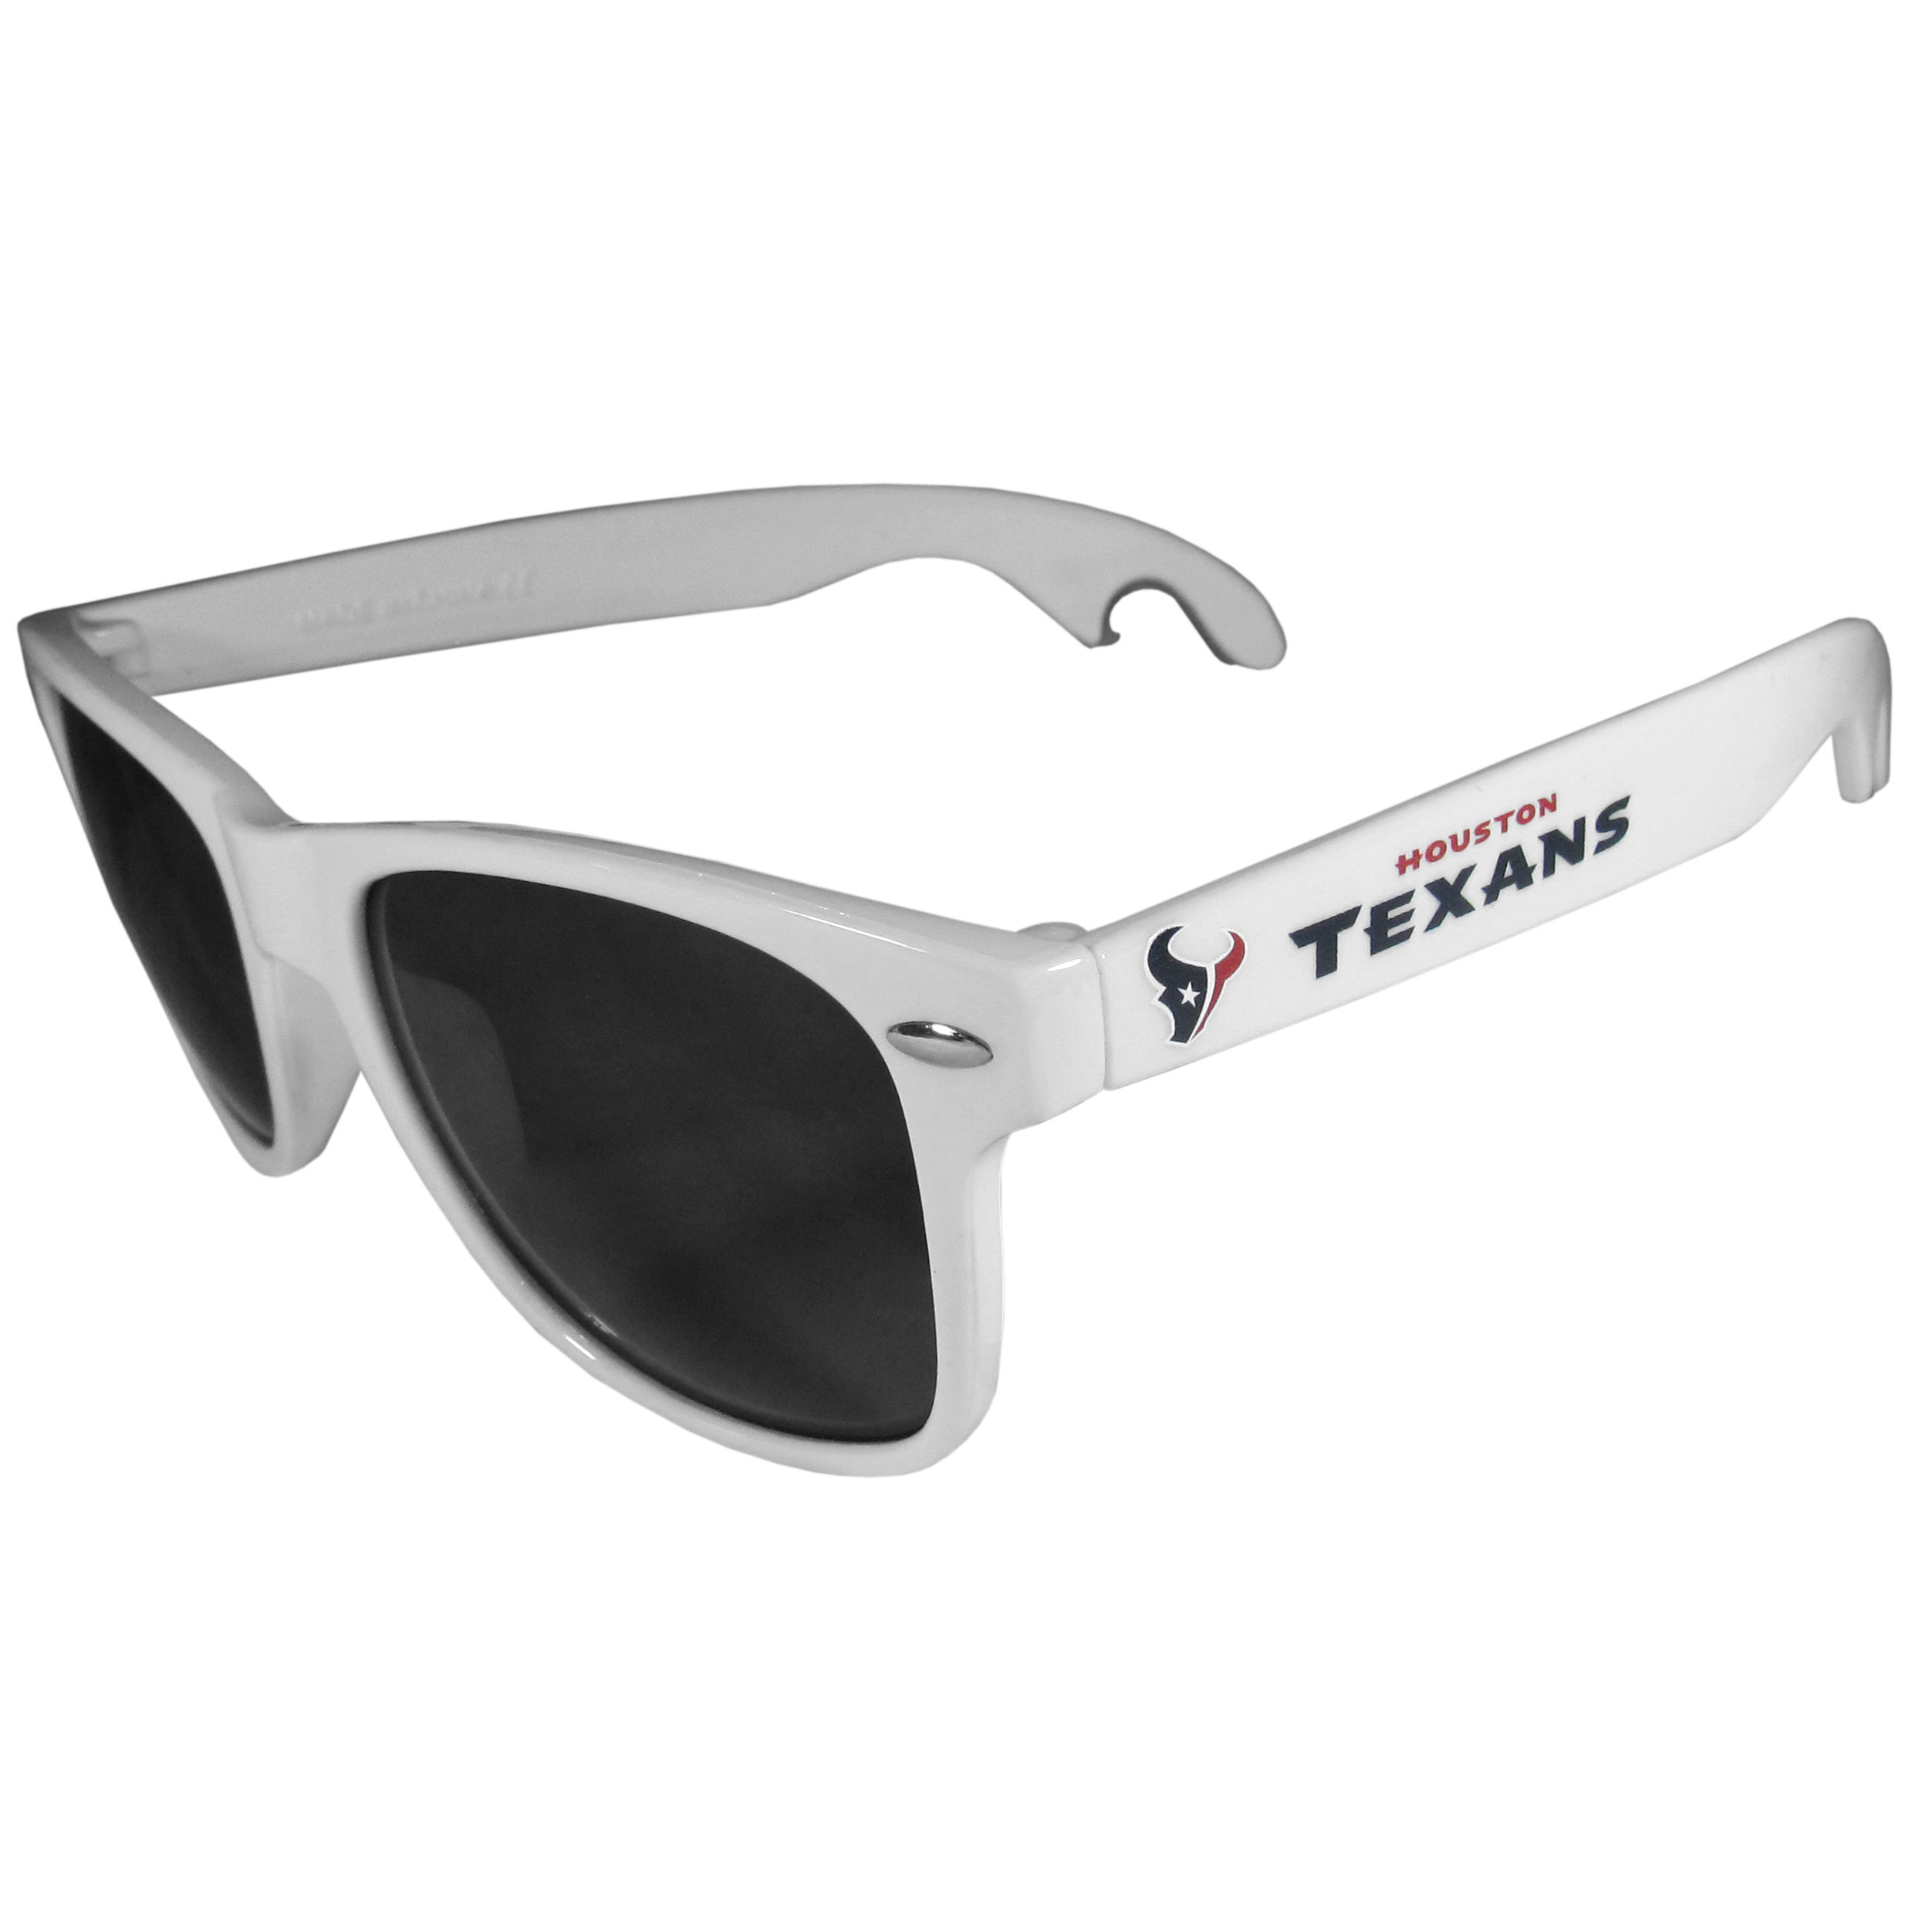 Houston Texans Beachfarer Bottle Opener Sunglasses, White - Seriously, these sunglasses open bottles! Keep the party going with these amazing Houston Texans bottle opener sunglasses. The stylish retro frames feature team designs on the arms and functional bottle openers on the end of the arms. Whether you are at the beach or having a backyard BBQ on game day, these shades will keep your eyes protected with 100% UVA/UVB protection and keep you hydrated with the handy bottle opener arms.